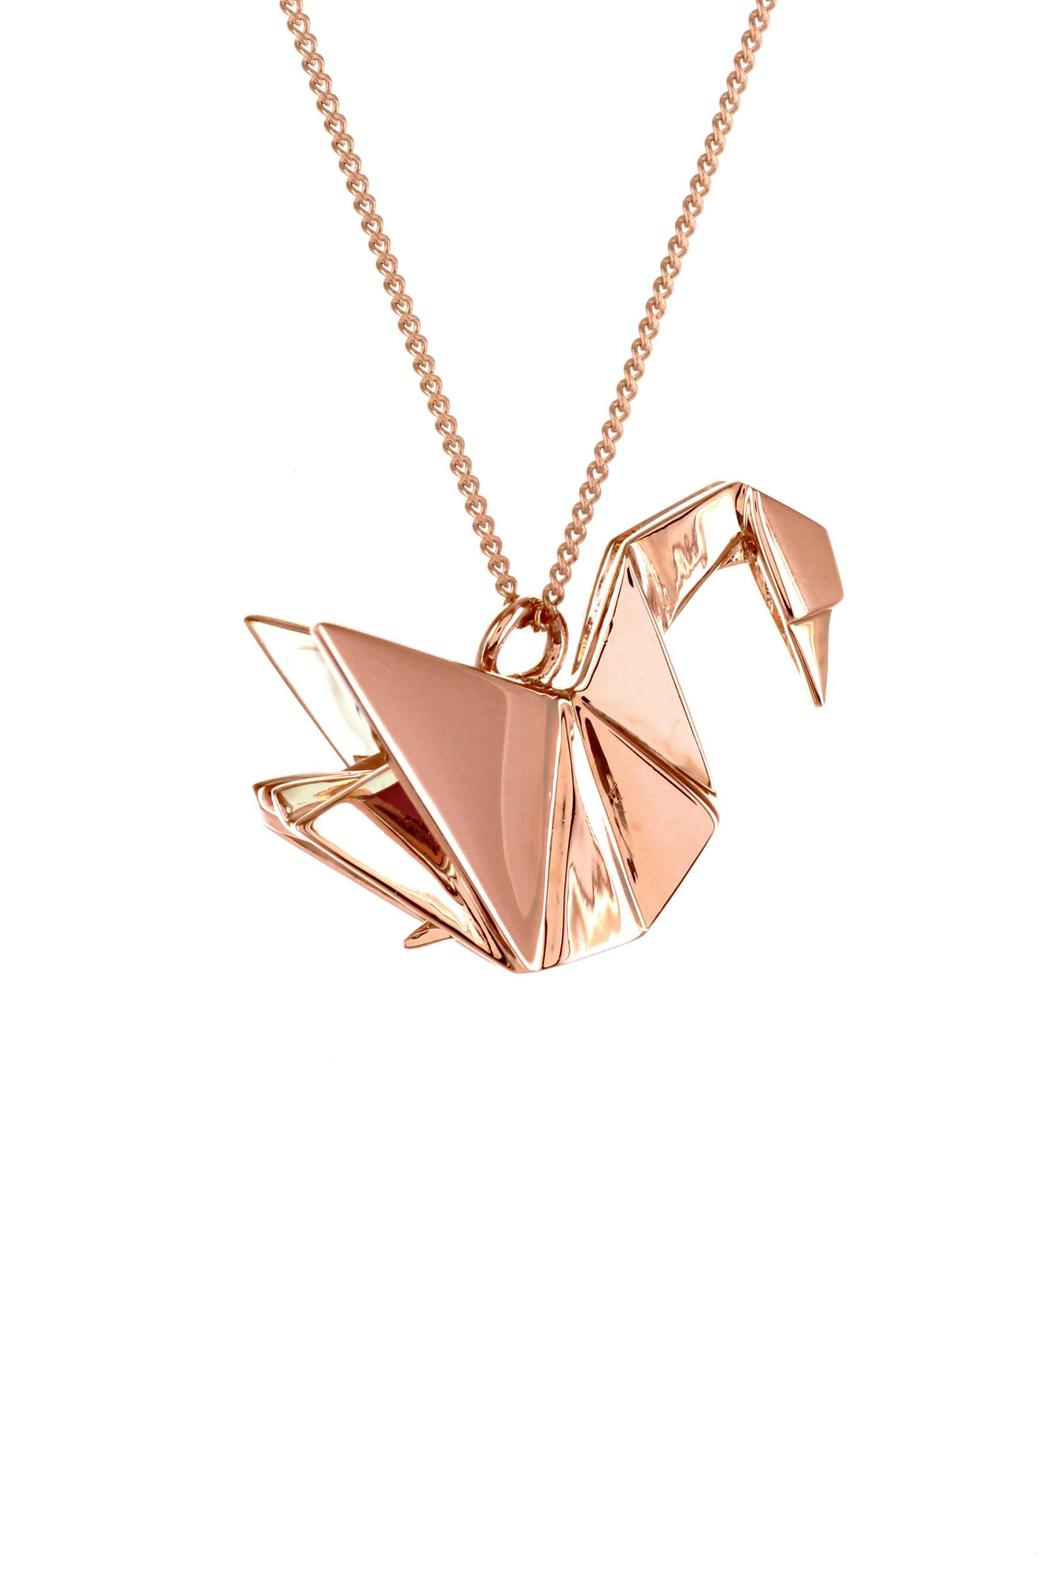 Origami Jewellery Swan Necklace from Bastille by Corner ... - photo#19